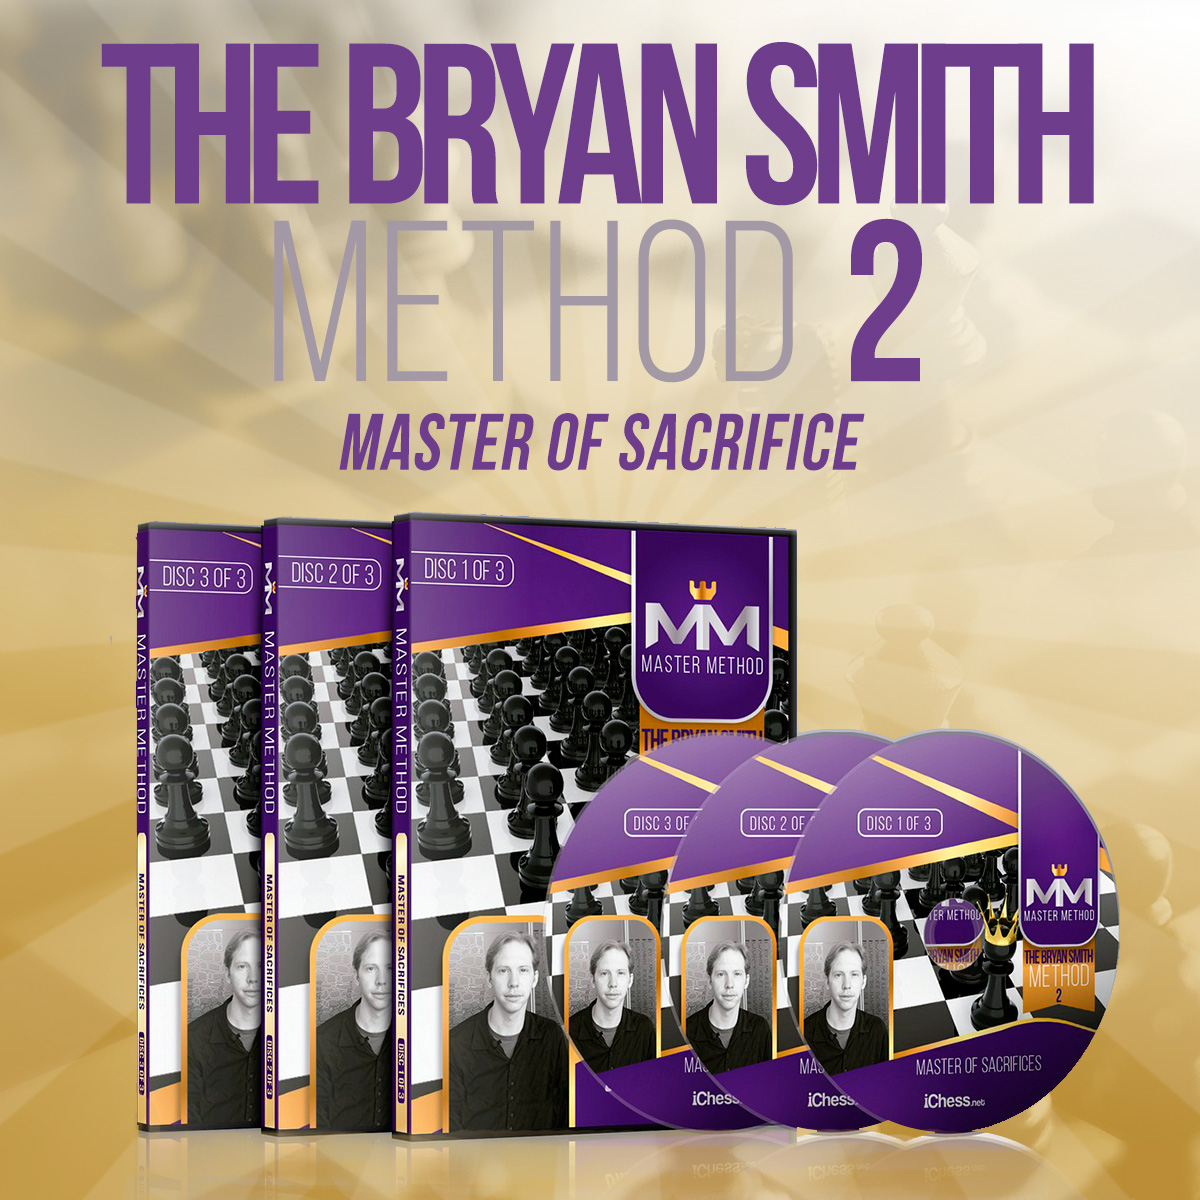 i8x_master-of-sacrifice-bryan-smith-master-method-2.jpg